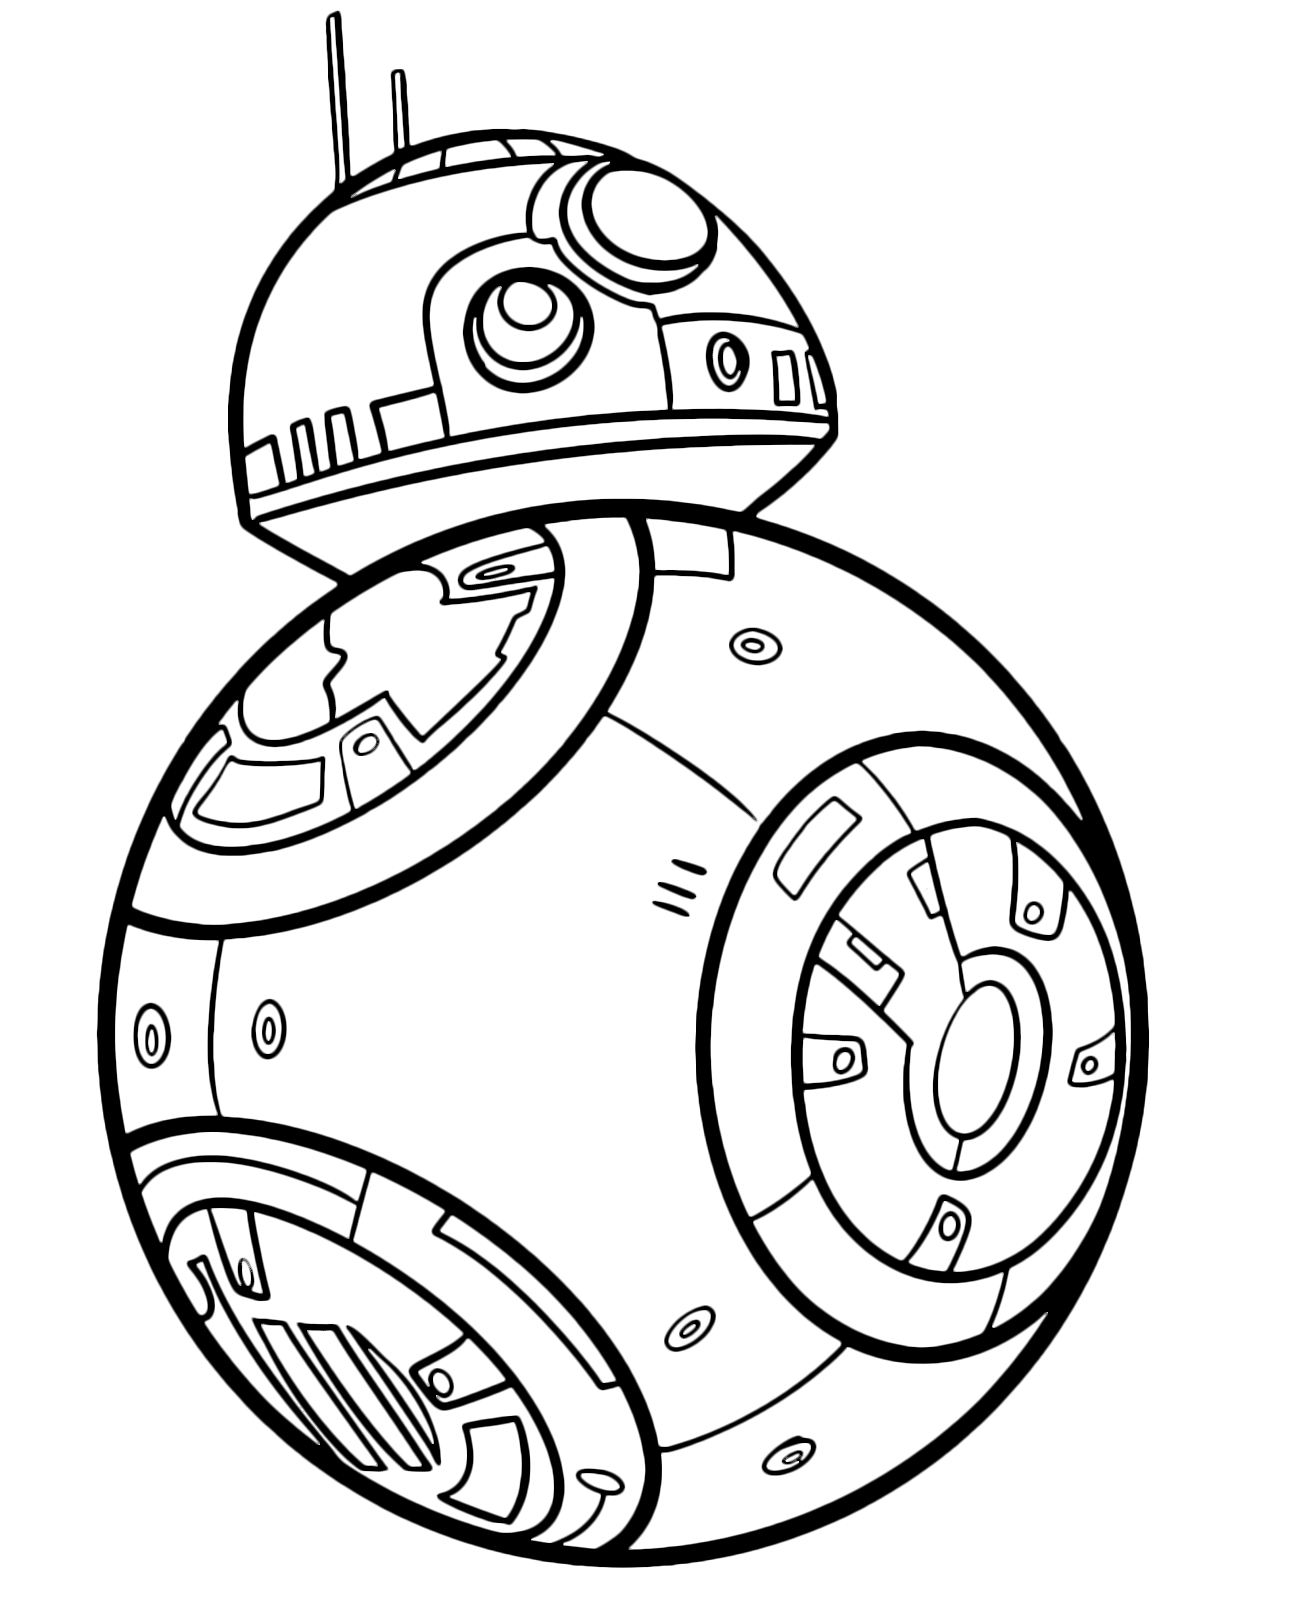 star wars droid coloring pages 1000 drone da colorare disegni da colorare droid coloring star wars pages